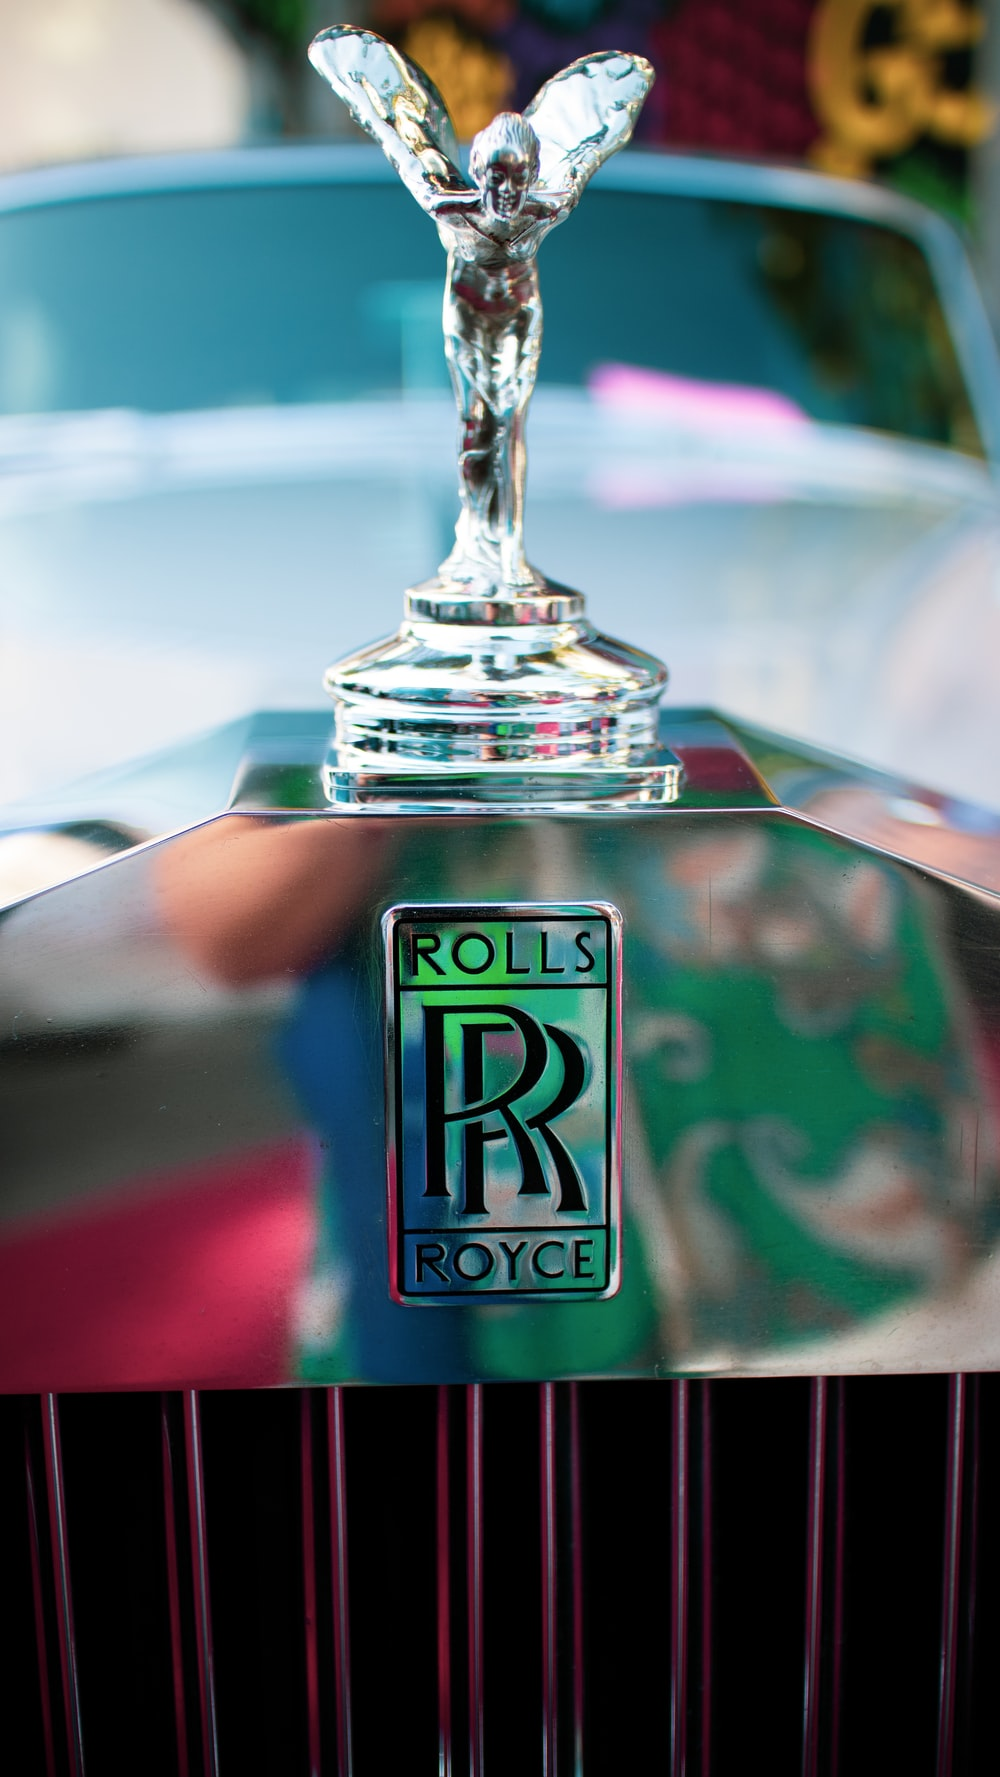 Rolls Royce Pictures Download Free Images On Unsplash